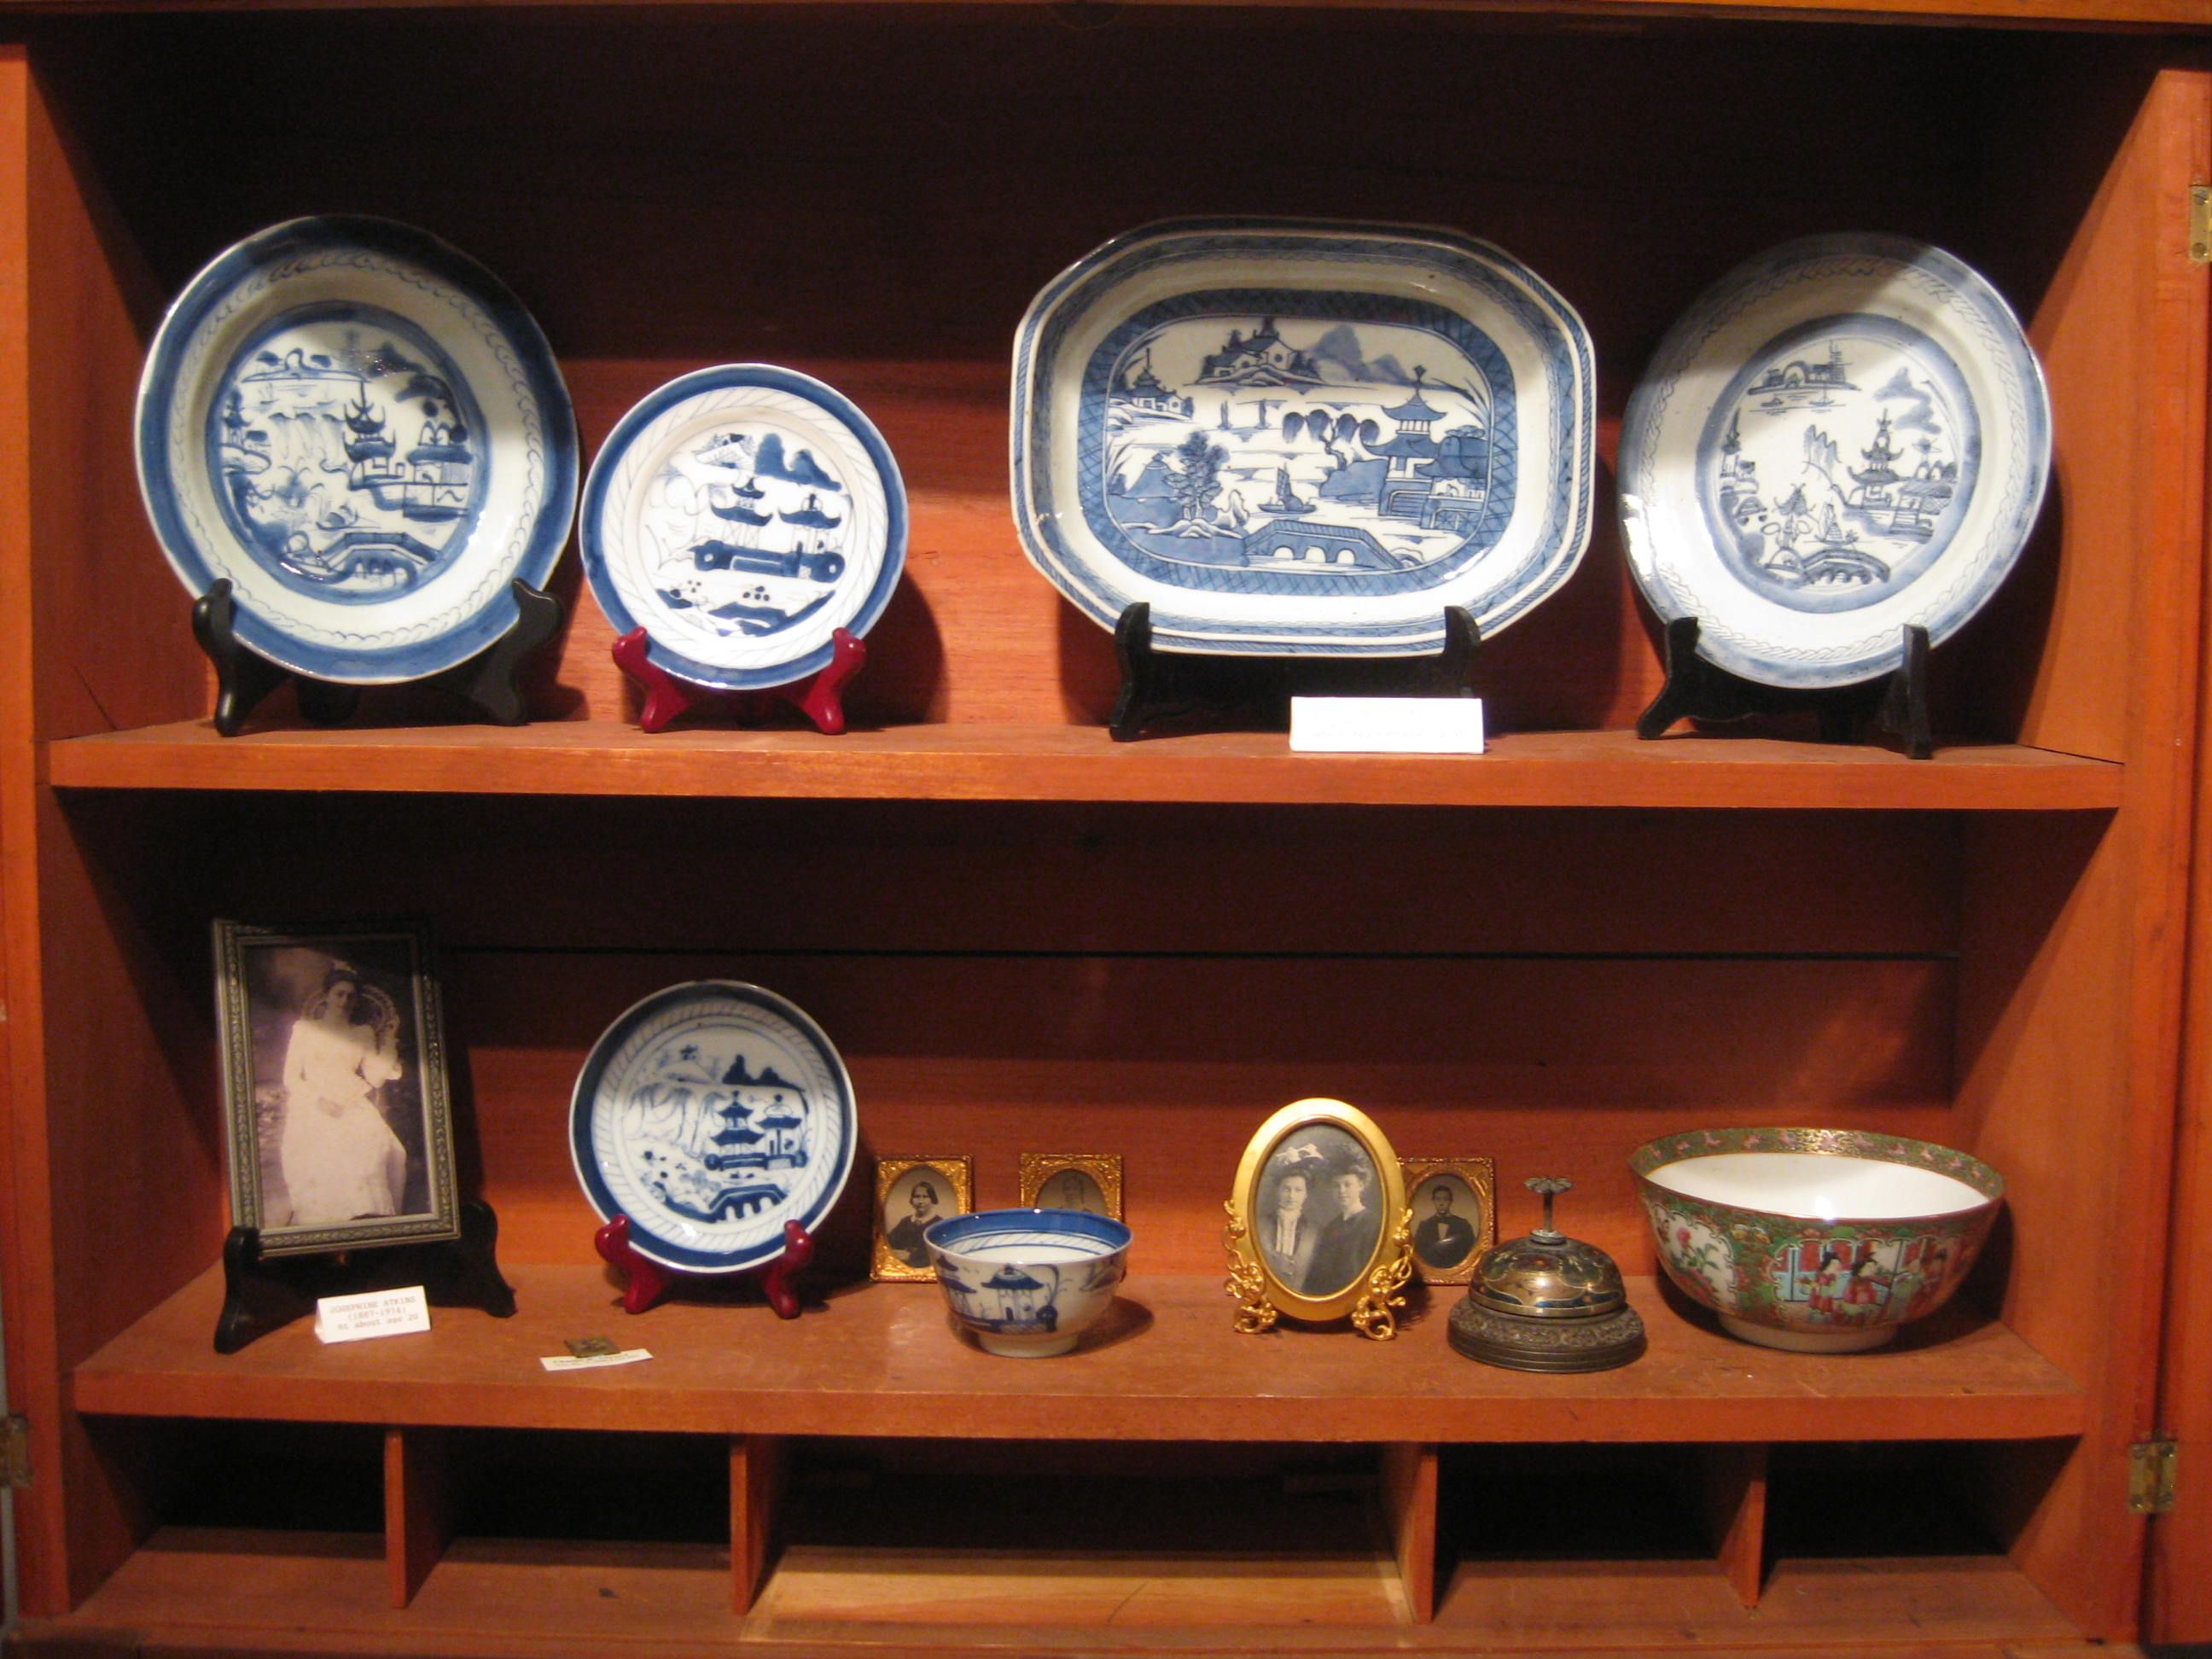 Artifacts in case for the Chatham to China exhibit. Several items donated by the Atkins family from the China trade era. #chathamhistoricalsociety, #atwoodhouse, #chatham, #capecod, #china